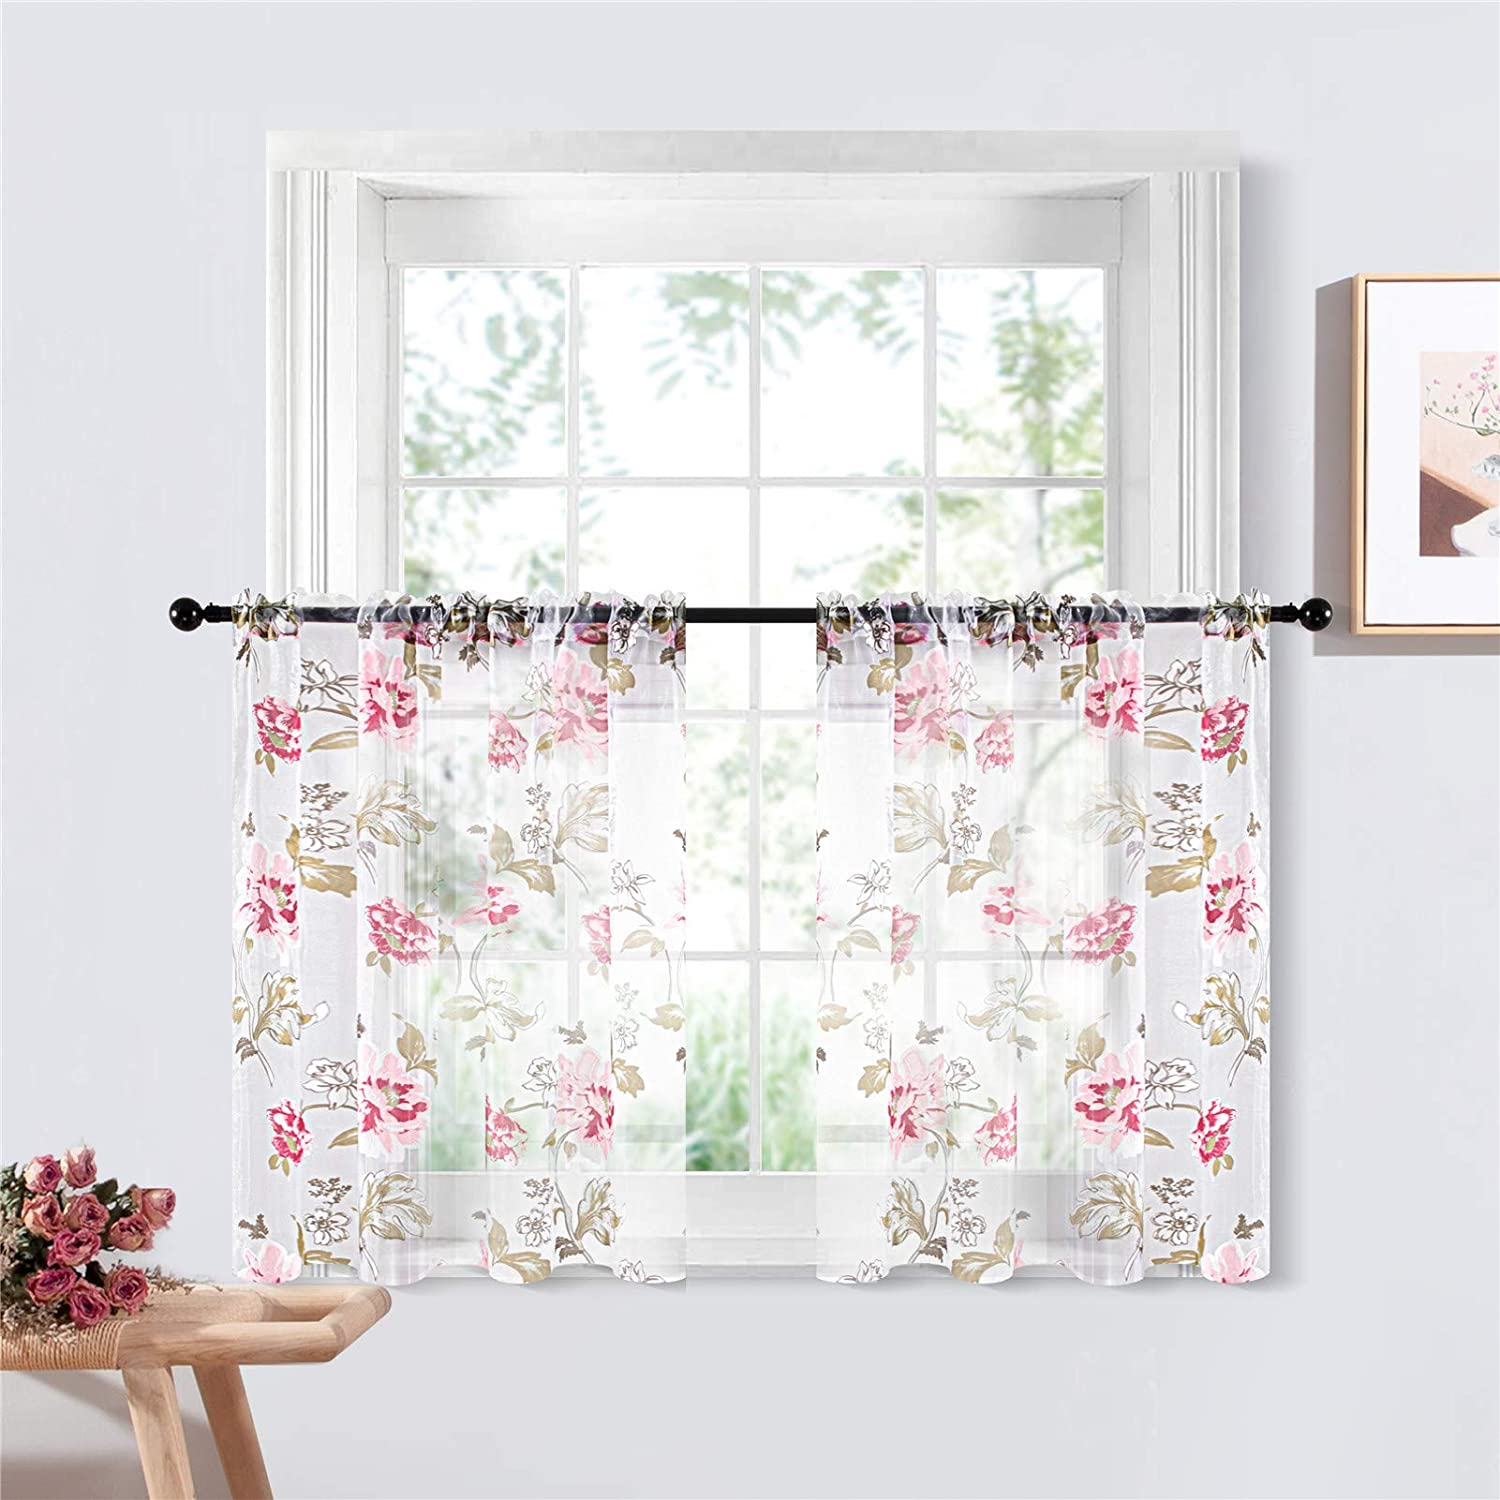 YOKISTG Pink Floral Sheer Kitchen Curtains 24 Inch Length Rod Pocket White Voile Tier Curtains for Cafe Basement Bathroom Small Window, 2 Panels